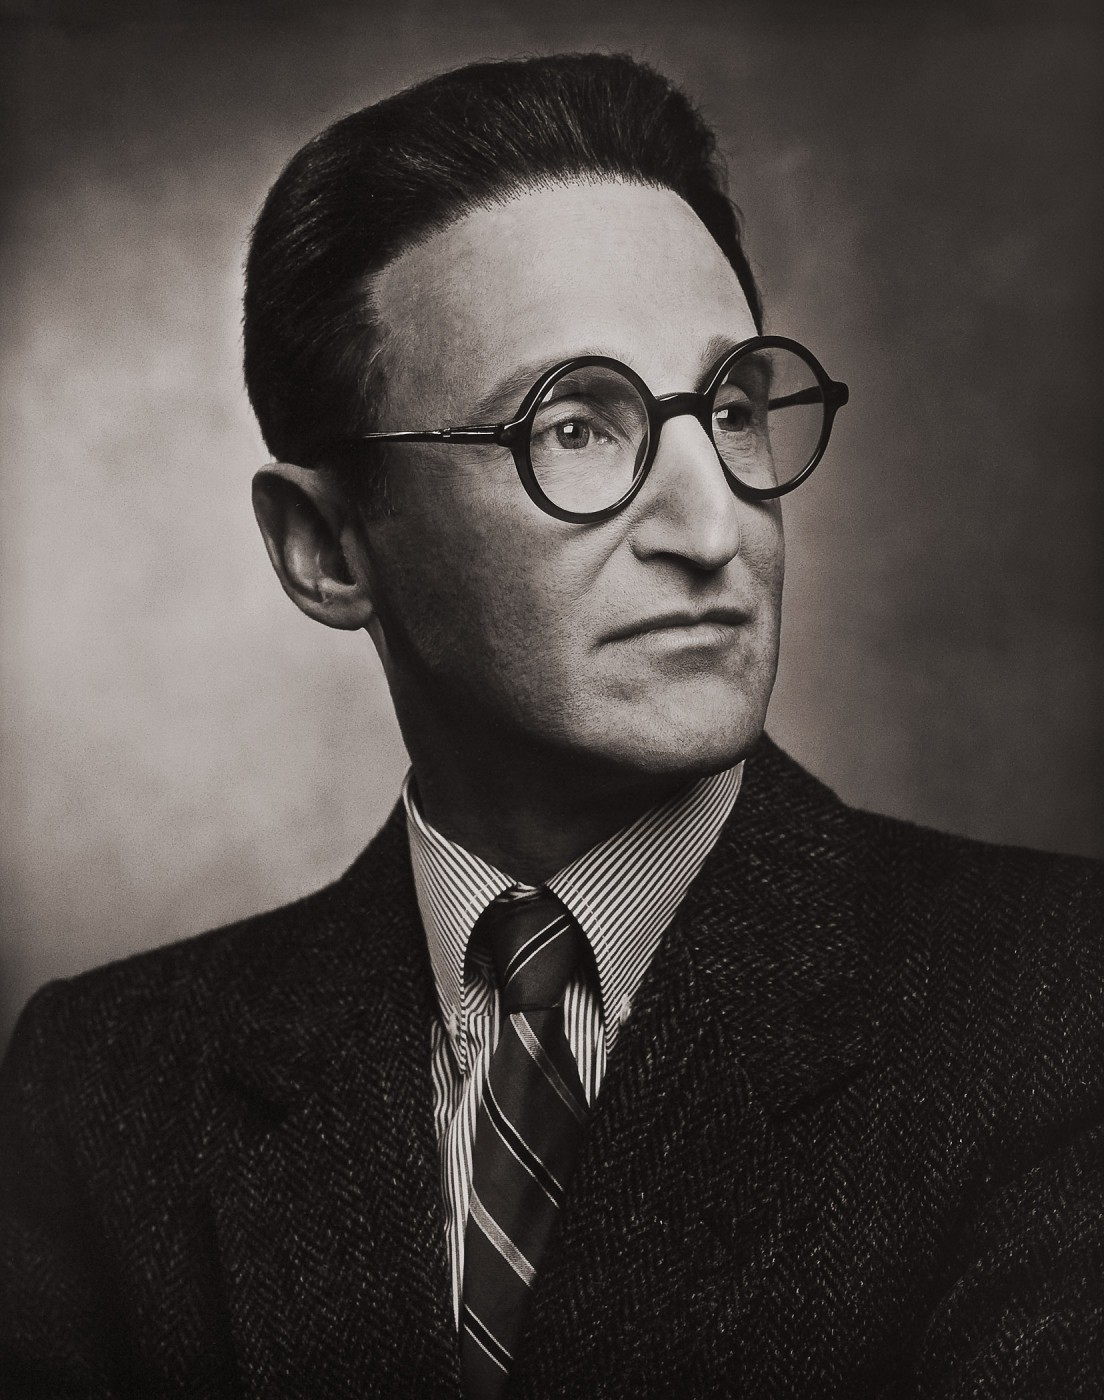 Rafael Goldchain, </span><span><em>Self-Portrait as Don Marcos José Goldchain Liberman (Glasses), b. Warsaw, Poland, 1902 d. Santiago de Chile, 1959</em>, </span><span>1999-2001 © Rafael Goldchain, 2001, Courtesy of O'Born Contemporary.  Photo © NGC